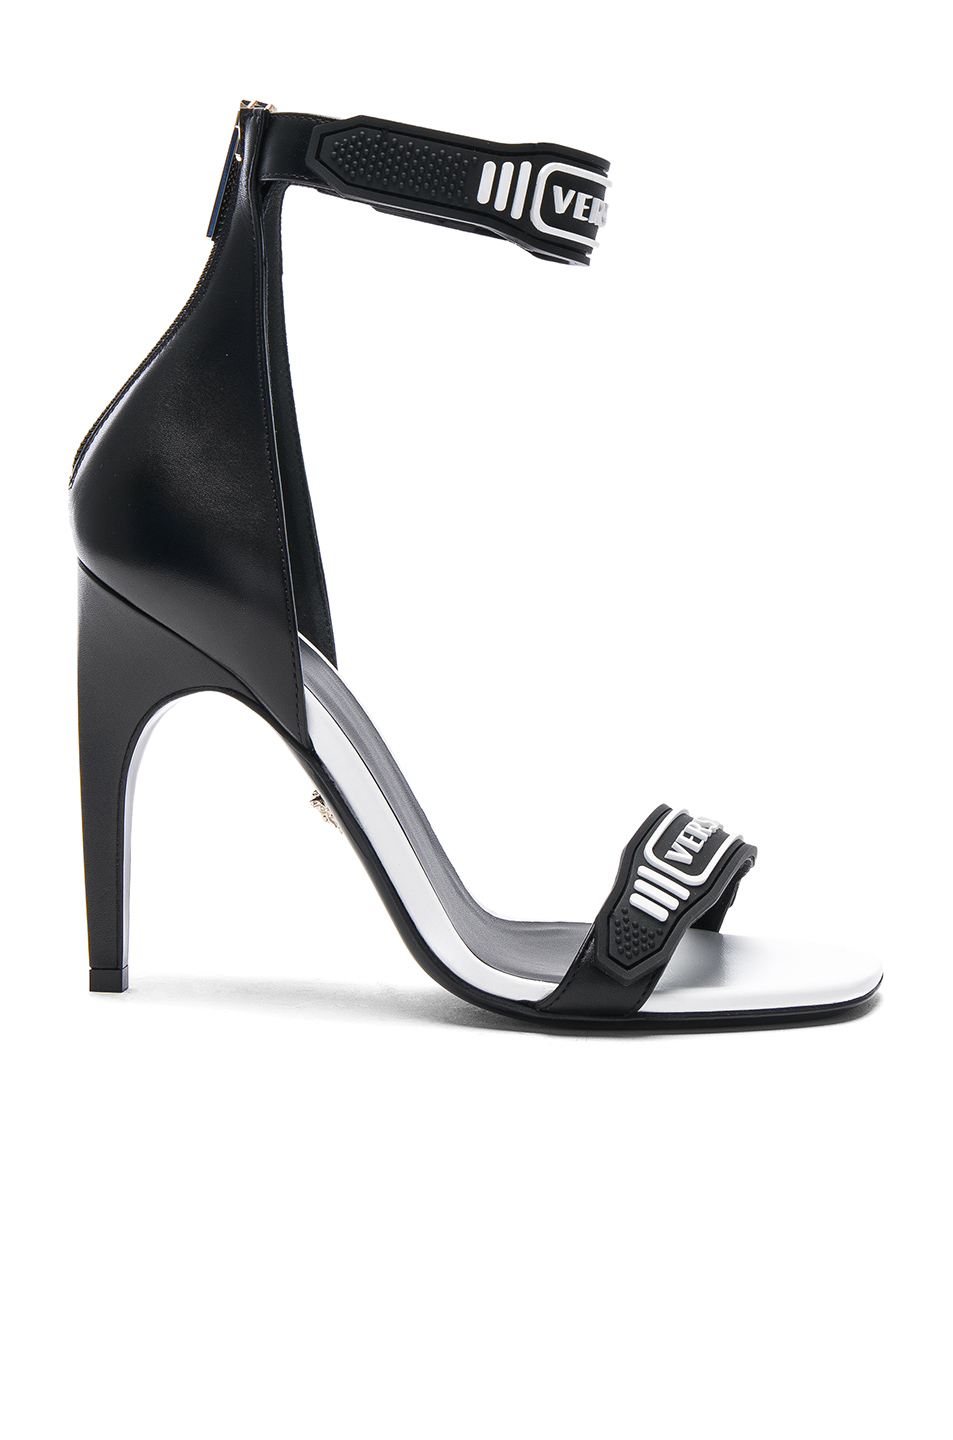 Logo Ankle Strap Leather Sandals by Versace, available on fwrd.com for $622 Olivia Culpo Shoes Exact Product